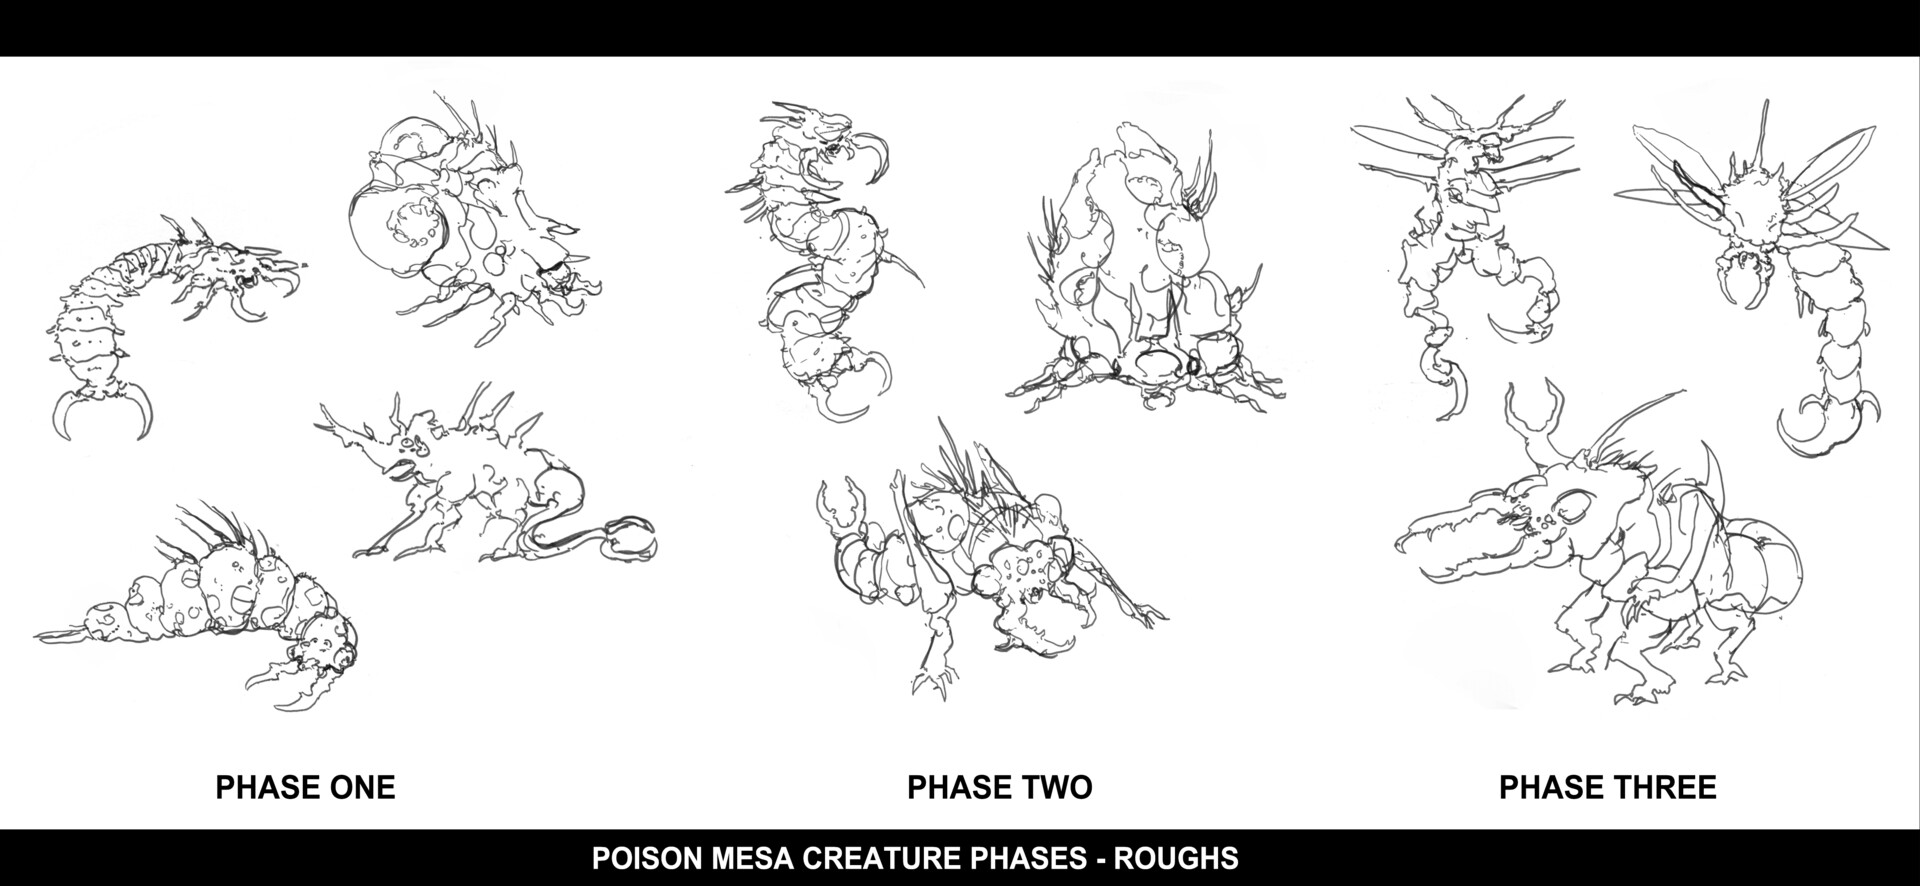 Christian herman pm creature phases roughs compiled